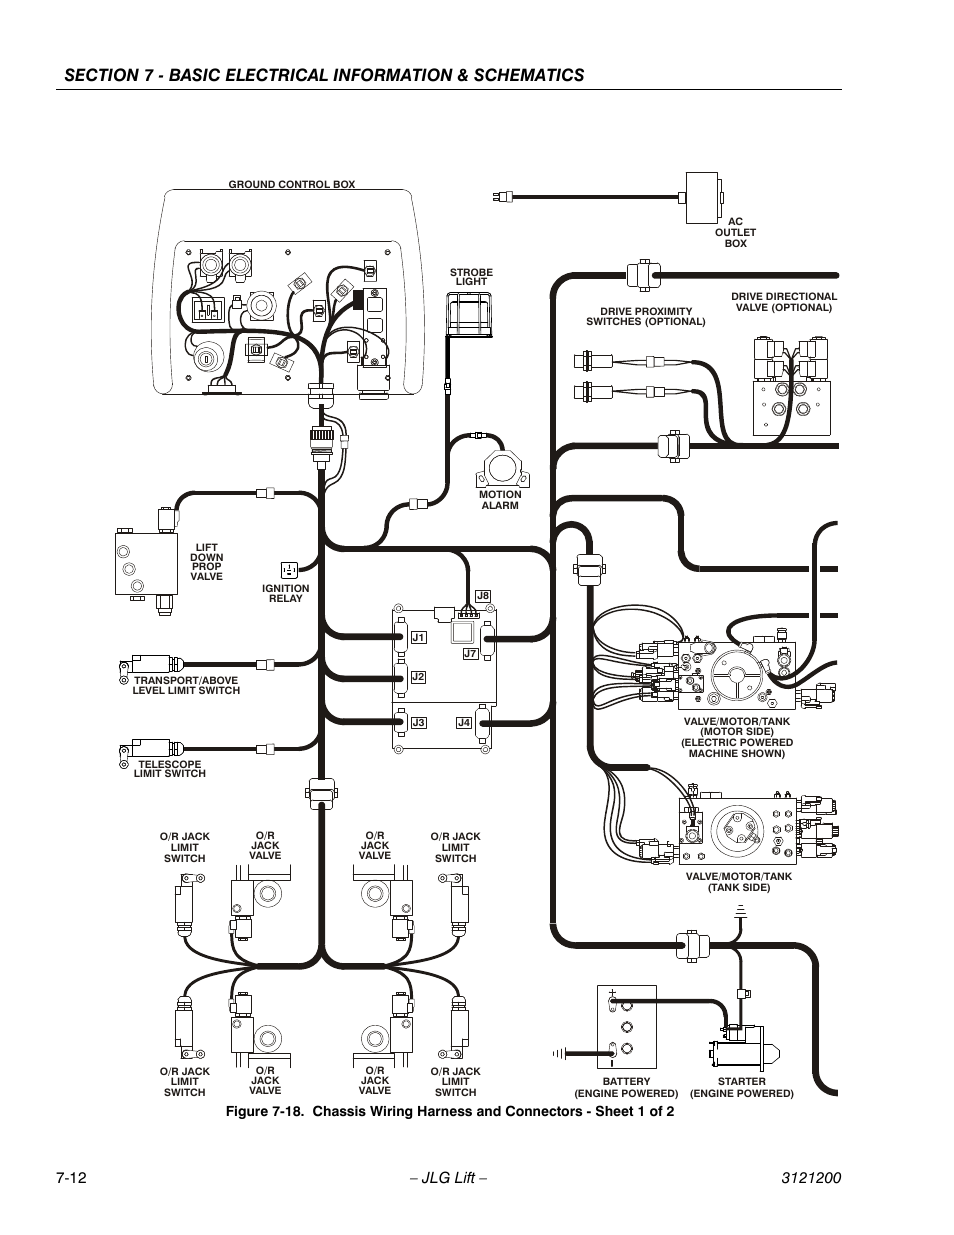 Jlg T500j Service Manual User Page 212 234 Proximity Switch Wiring Schematic